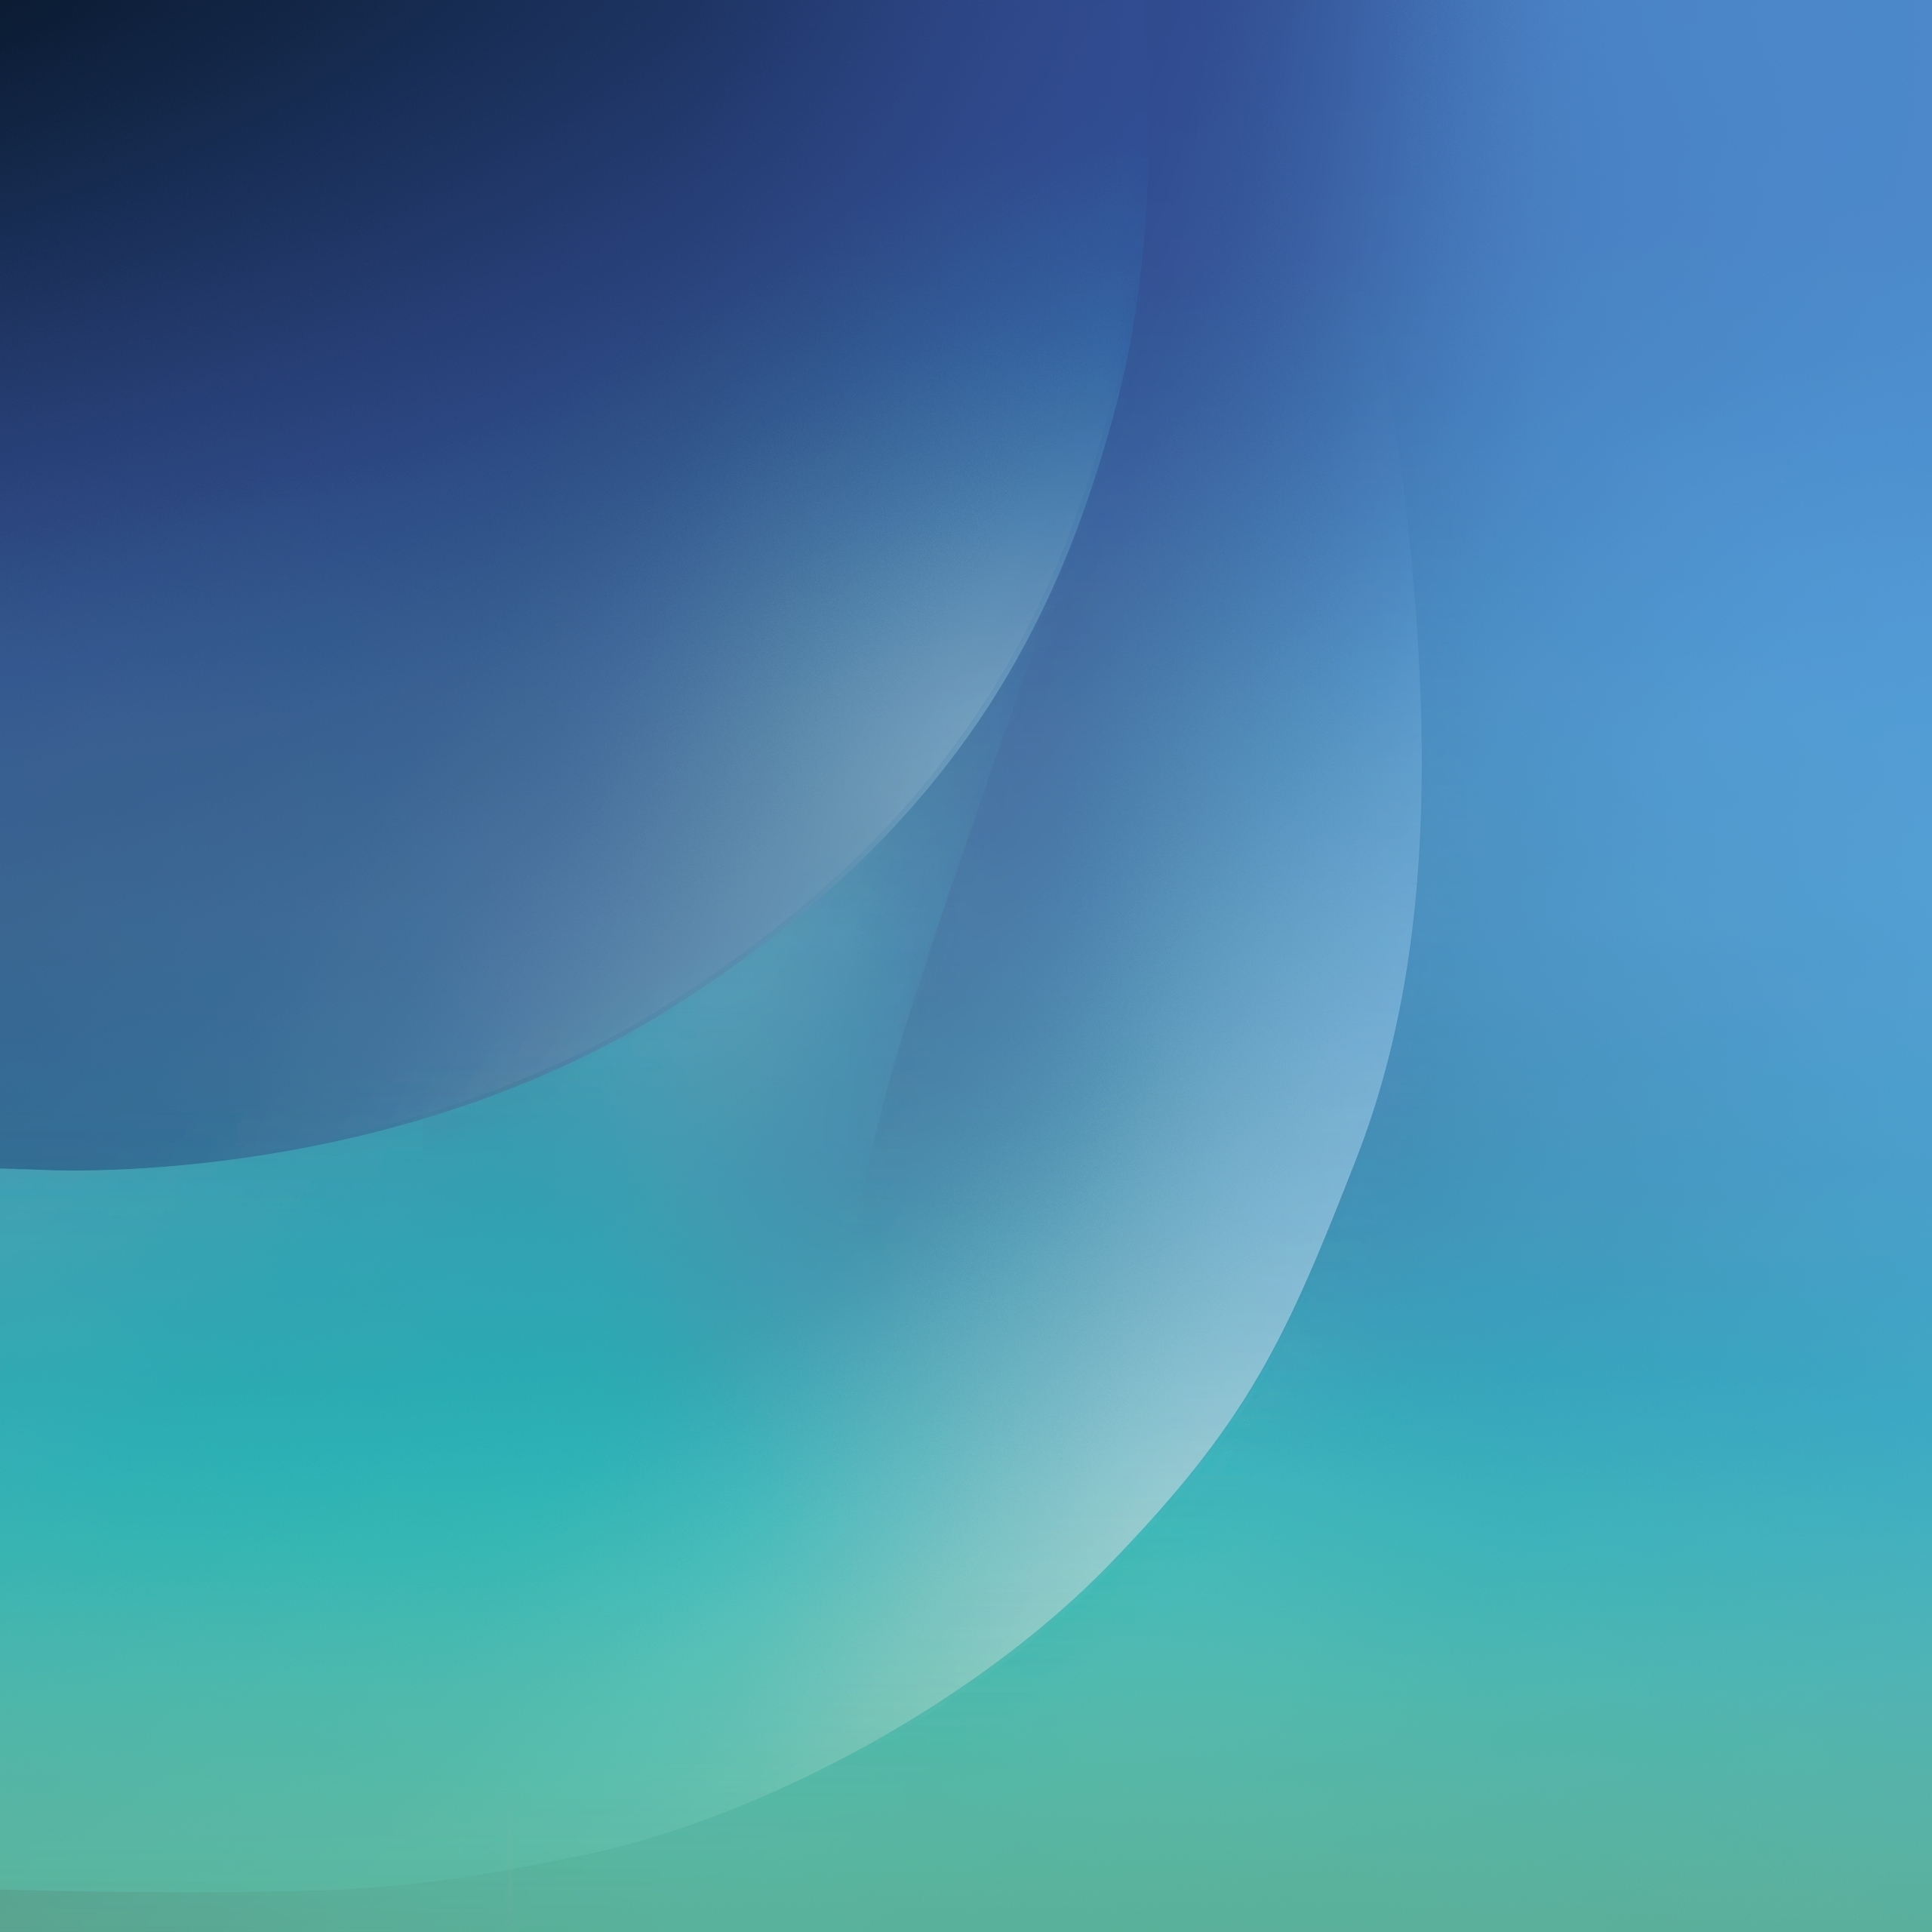 galaxy note 5 wallpapers - album on imgur